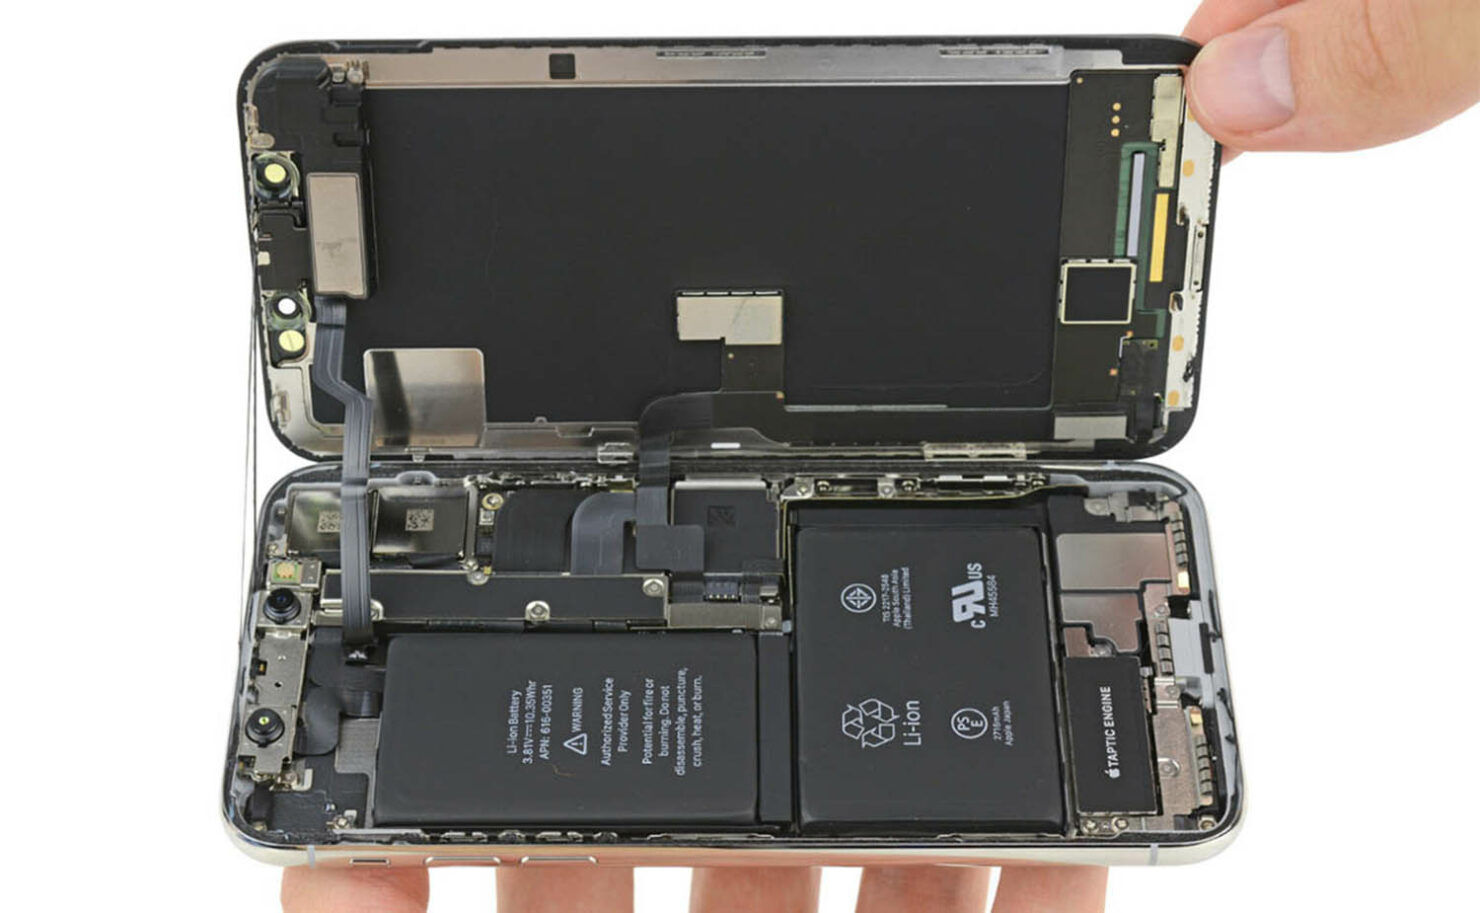 iPhone X Battery Life Crippled After Two Years, According to Users